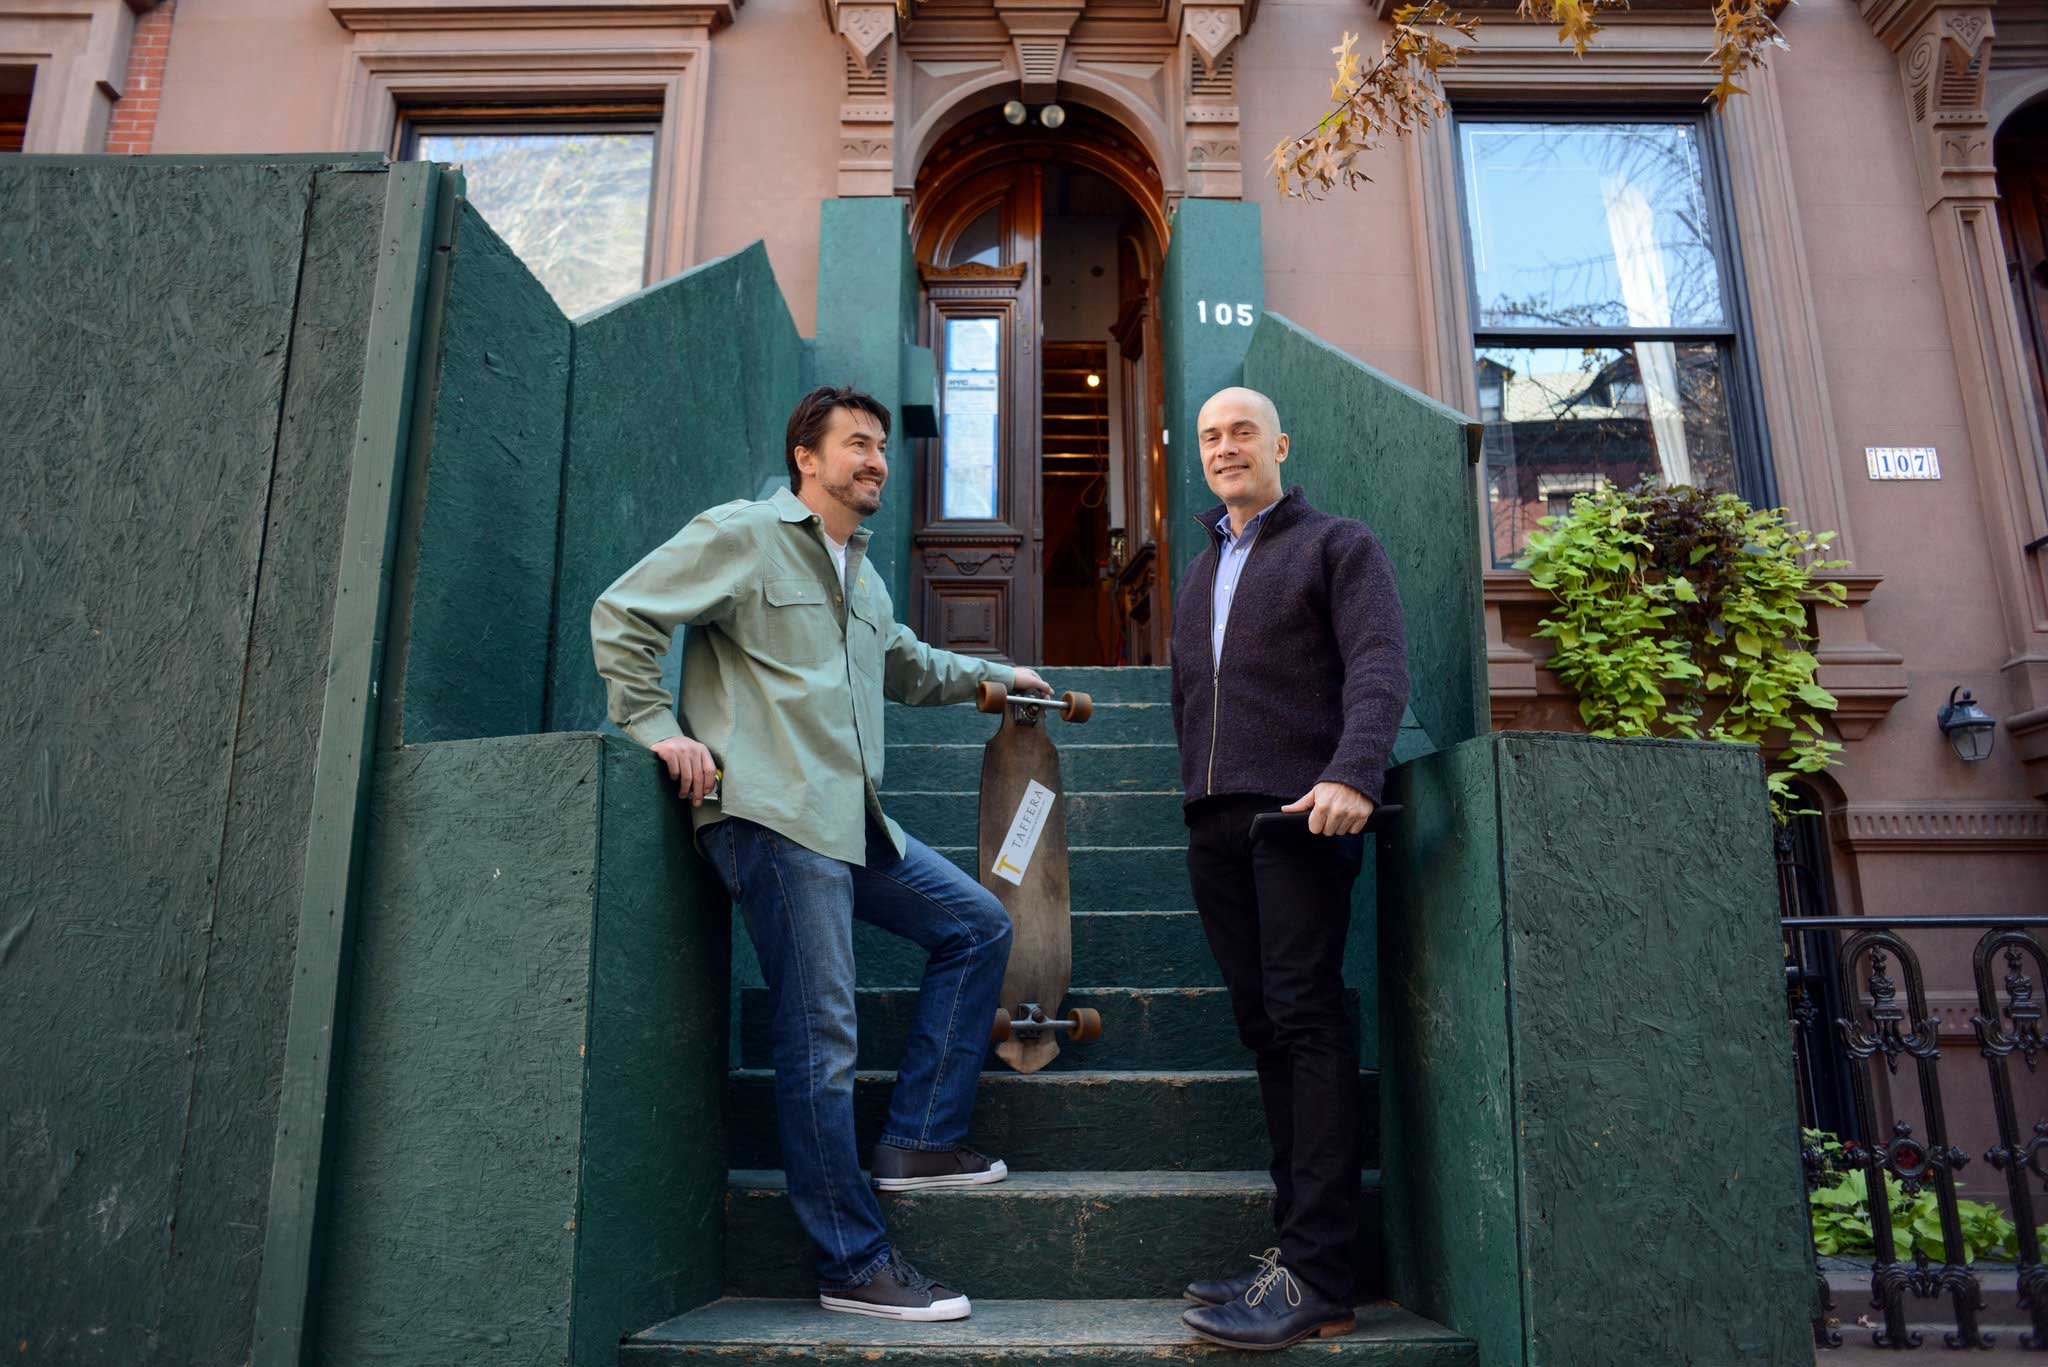 Robert and Eric Taffera are the restoration specialists of Brooklyn Heights - New York Times December 17, 2015